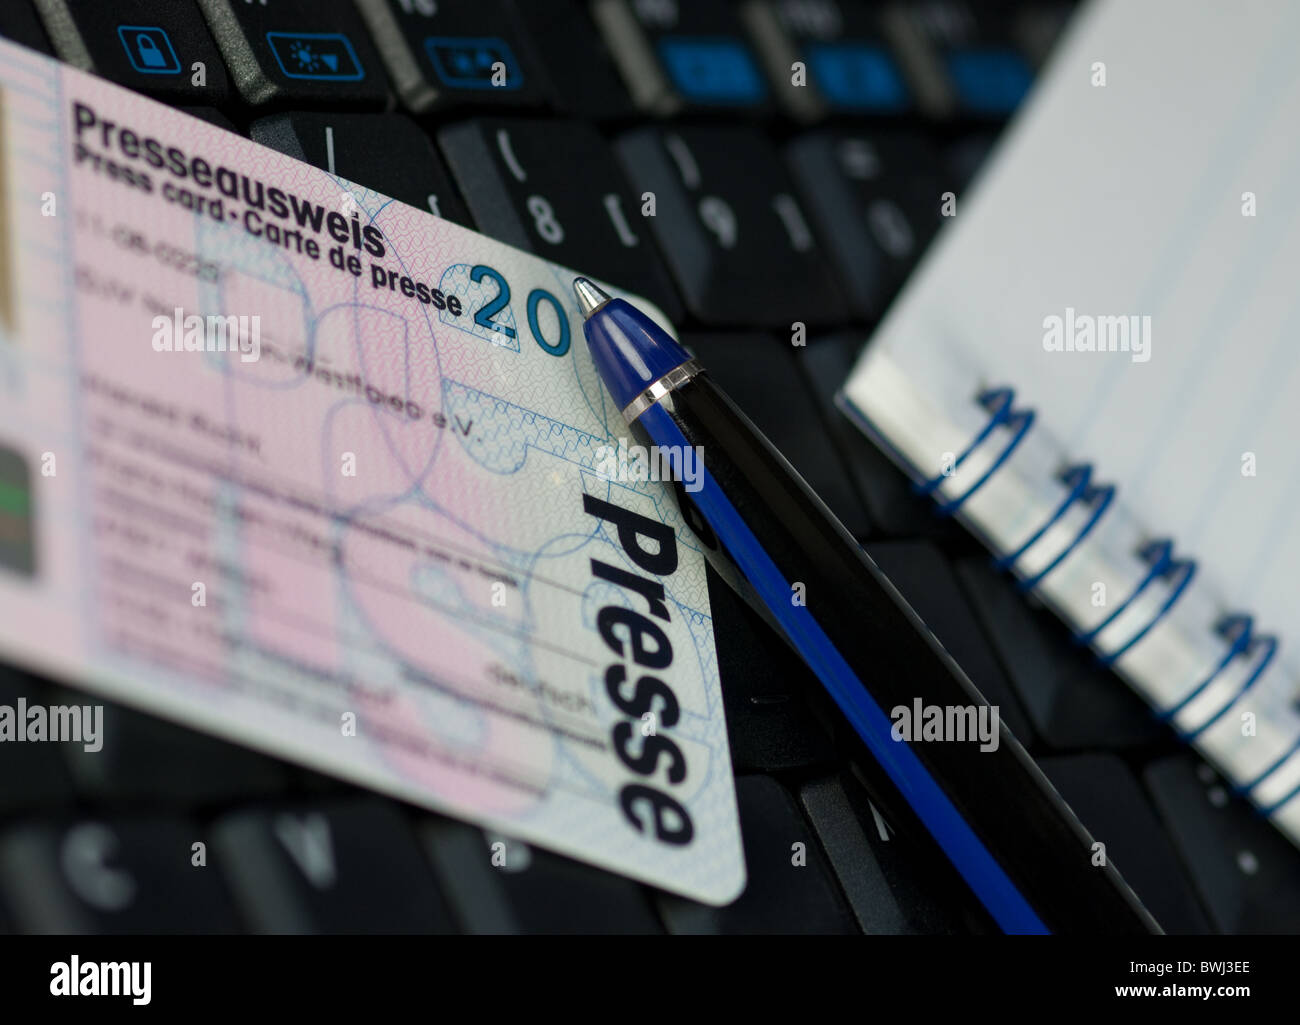 Press card - Stock Image